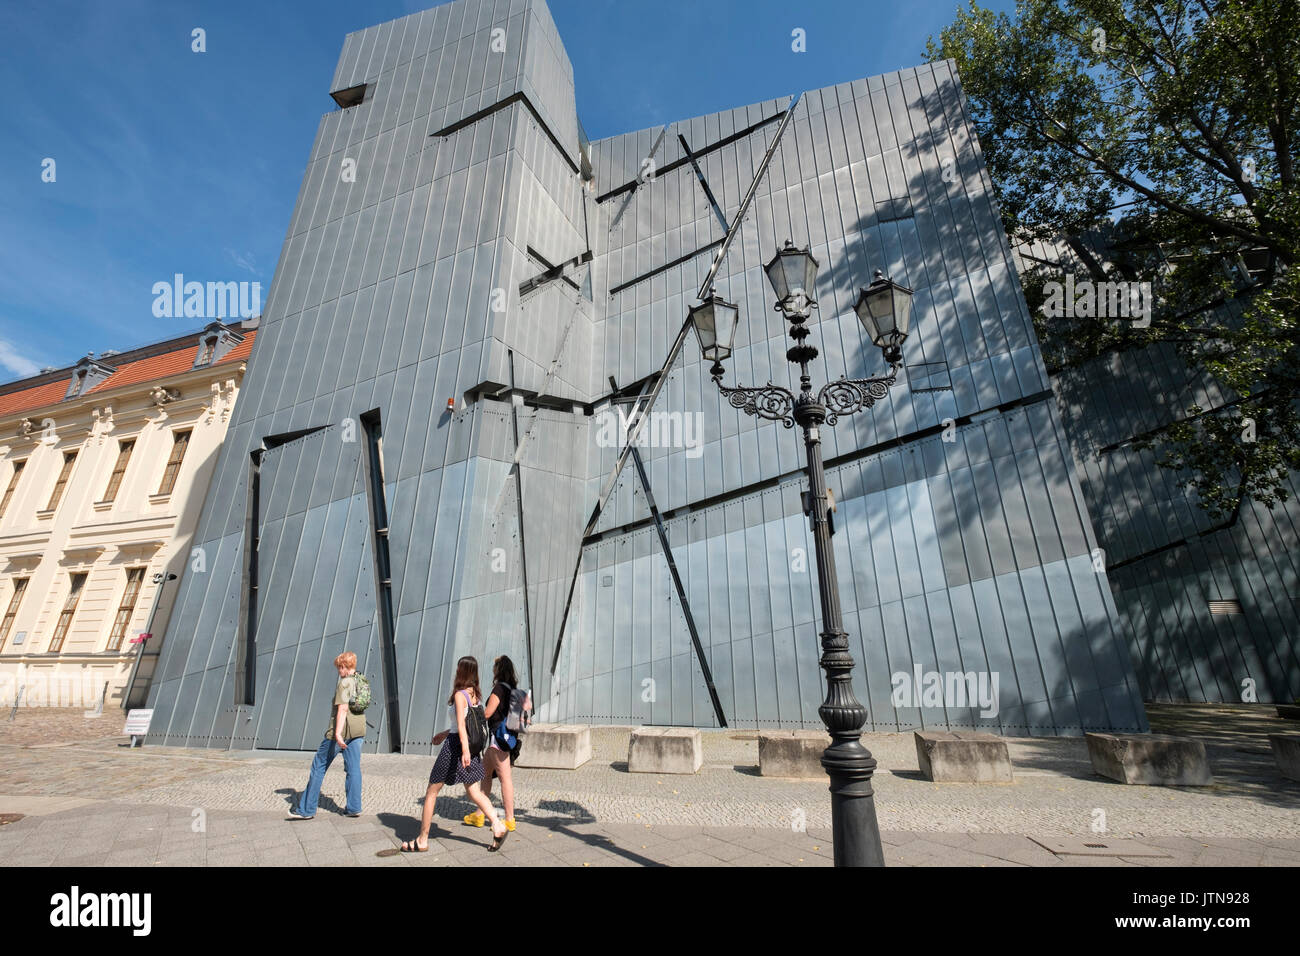 View of the Jewish Museum designed by Daniel Libeskind in Kreuzberg, Berlin, Germany - Stock Image